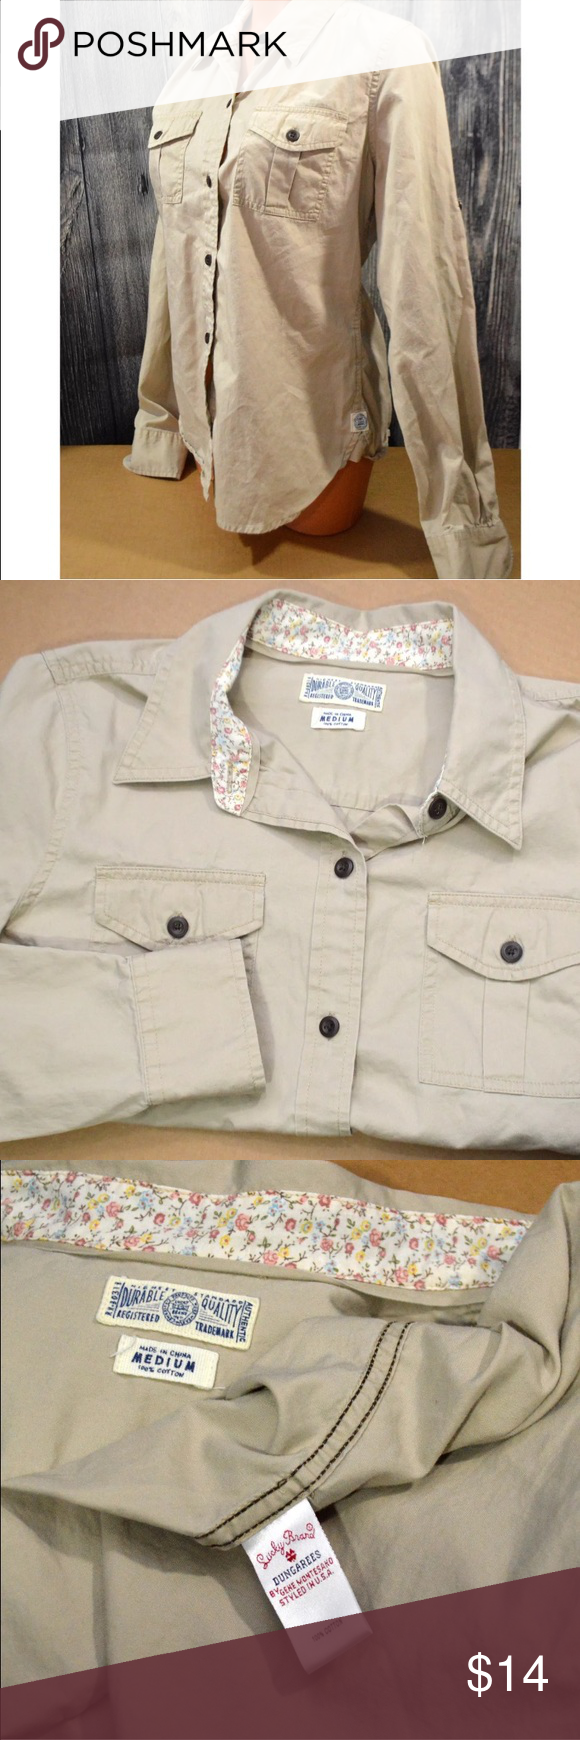 "Lucky Brand Dungarees Tan Button Down Shirt Lucky Brand Dungarees  Beige Tan Button Down Shirt  Size M   Gently worn, see images for the exact item you will receive.   Approx 17"" armpit to armpit. Lucky Brand Tops Tees - Long Sleeve"